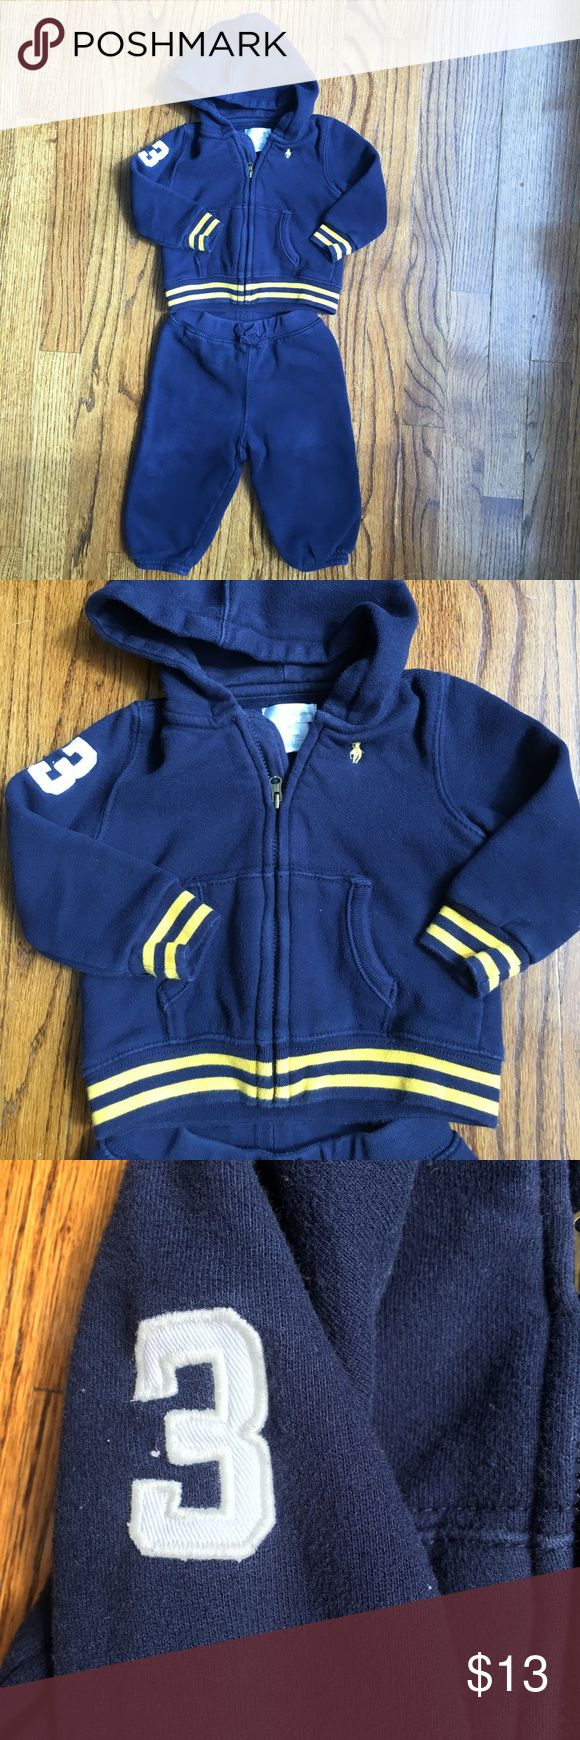 Polo Ralph Lauren baby boy sweat suit Polo Ralph Lauren baby boy sweat suit. Set includes sweat pants and a full zip hoodie. Navy with bright yellow stripe on sleeve cuff and waist band ( sweat shirt only). A white #3 is on the right sleeve. Gently used and lots of life left. size 6-9 months. Polo by Ralph Lauren Matching Sets